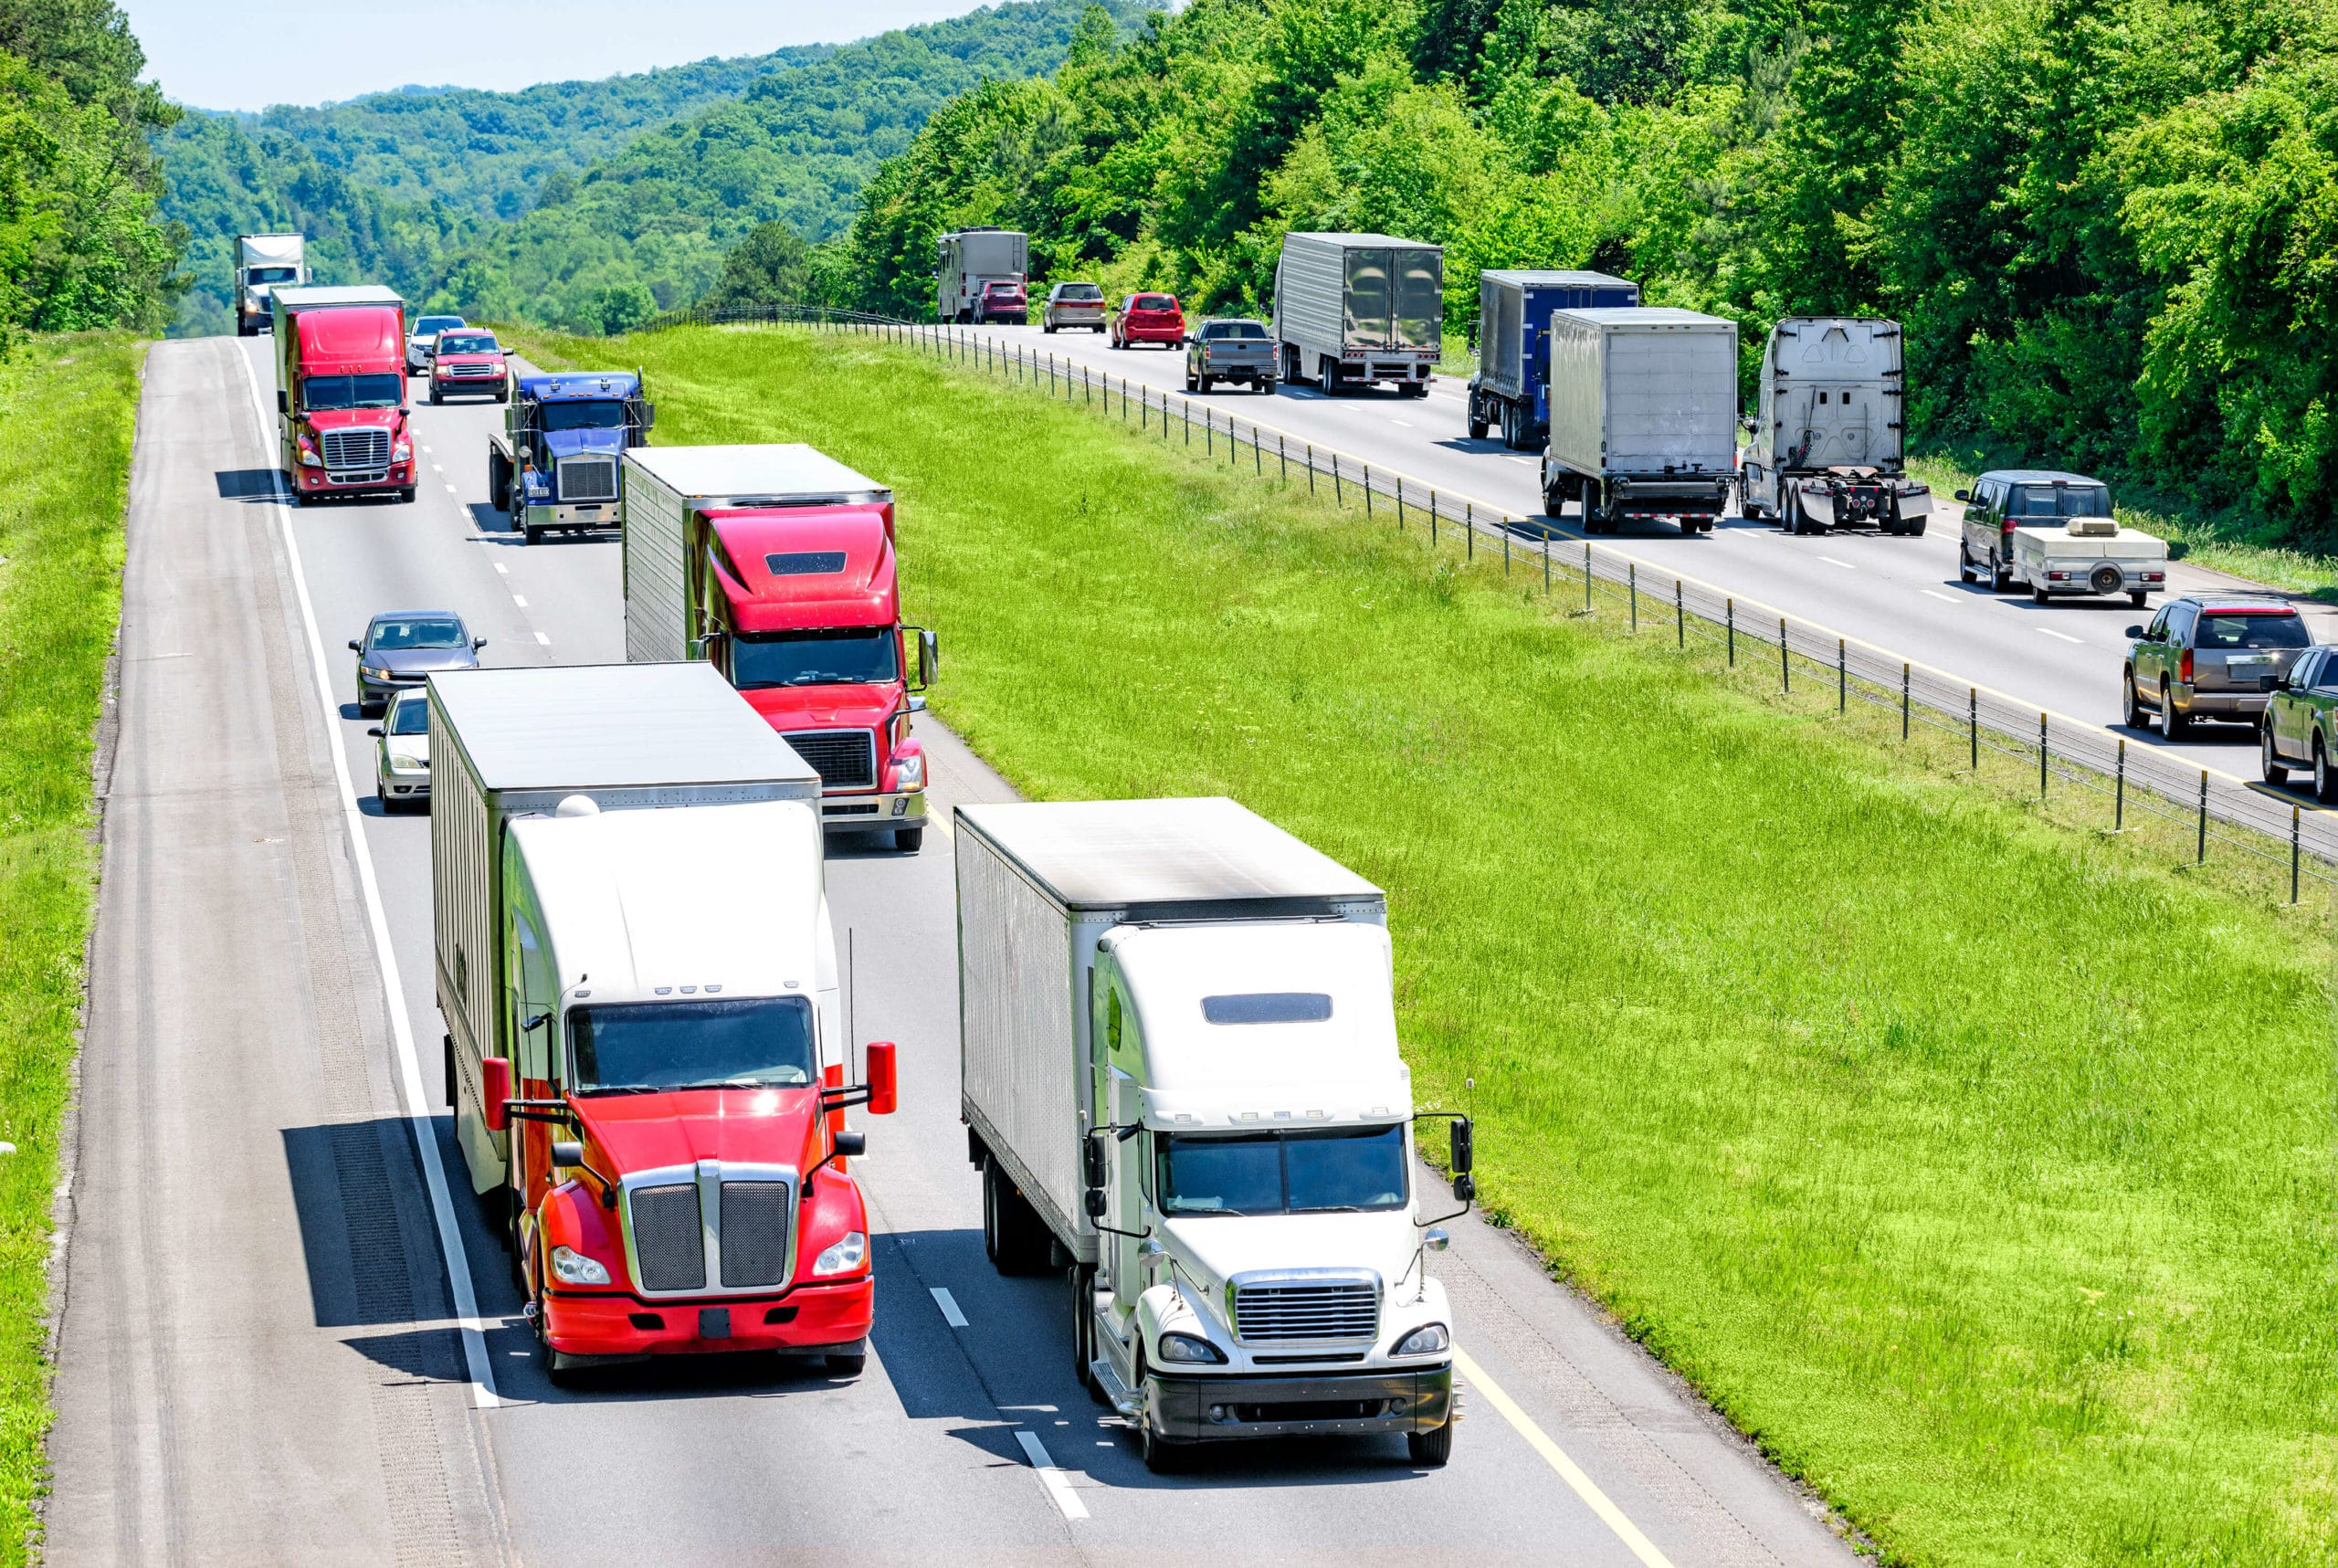 Large trucks traveling up and down a busy freeway in the countryside.